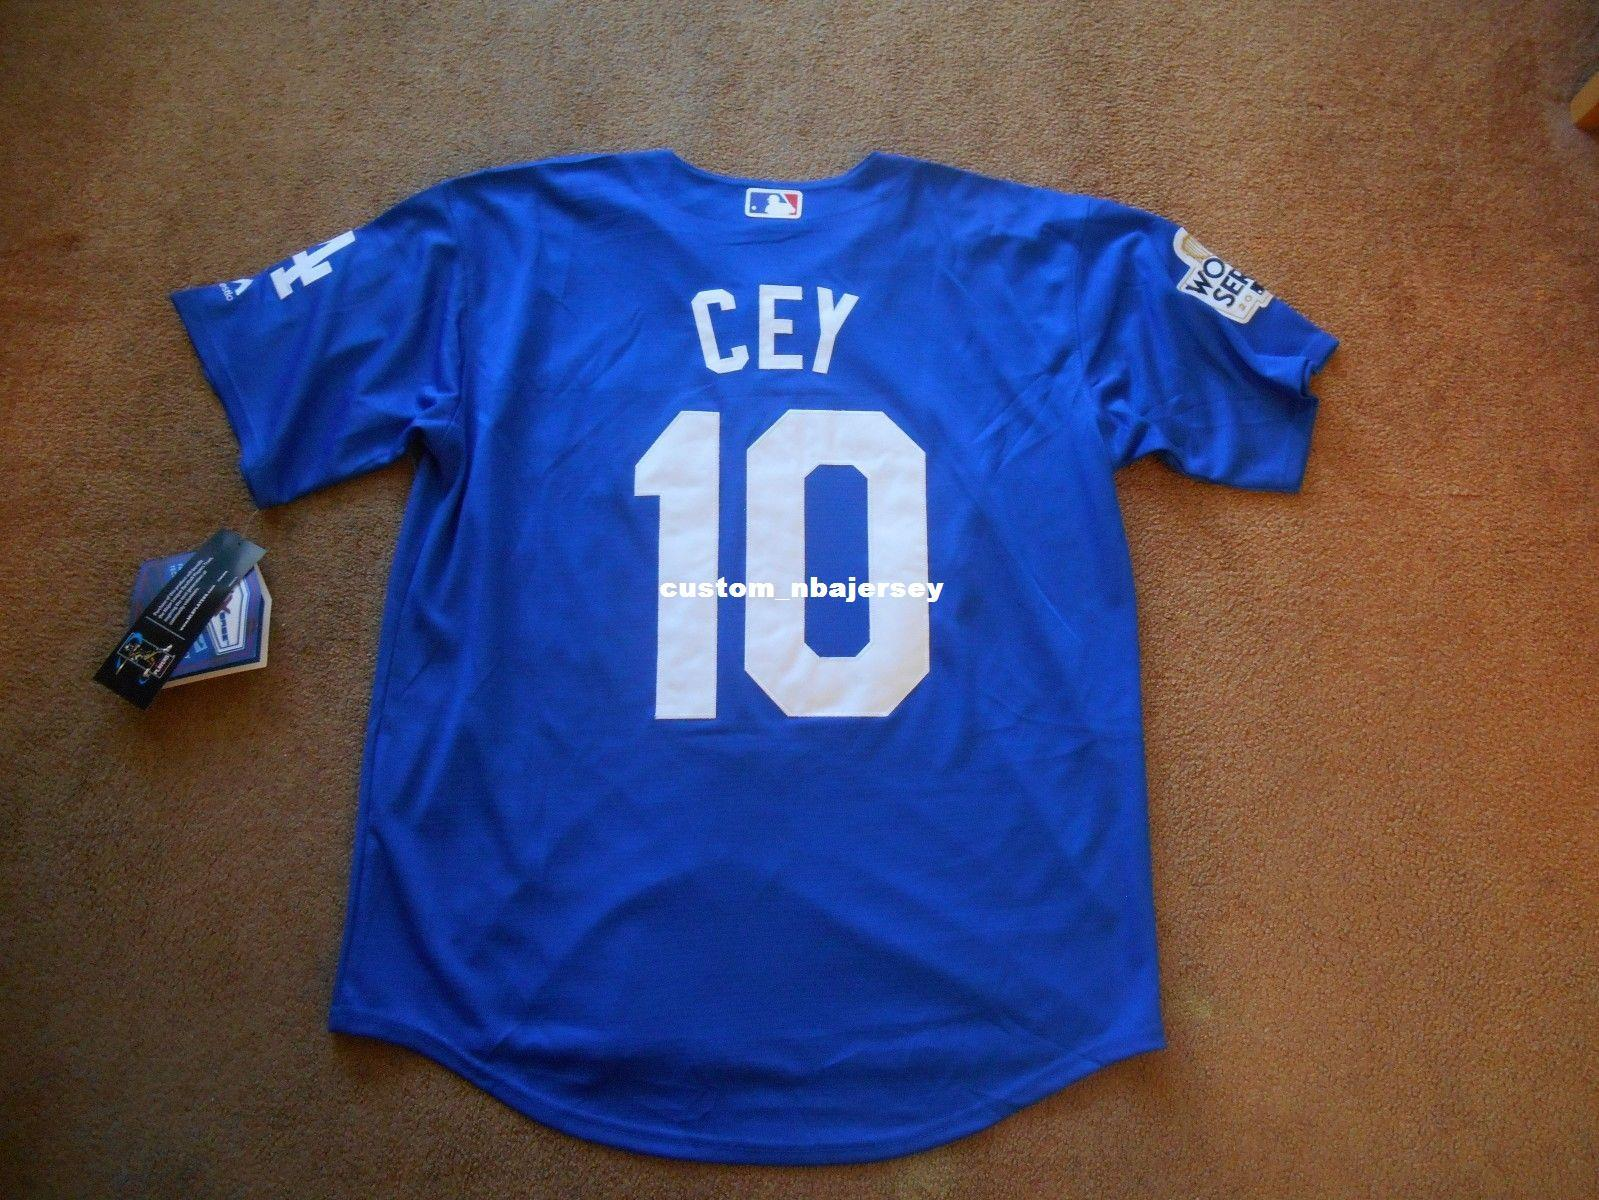 Cheap Custom Ron Cey  10 L.A. Stitched Blue Button WS Baseball Jersey  Stitched Customize Any Name Number MEN WOMEN YOUTH Jerseys Baseball Jerseys  Custom ... 2062acb7b6c